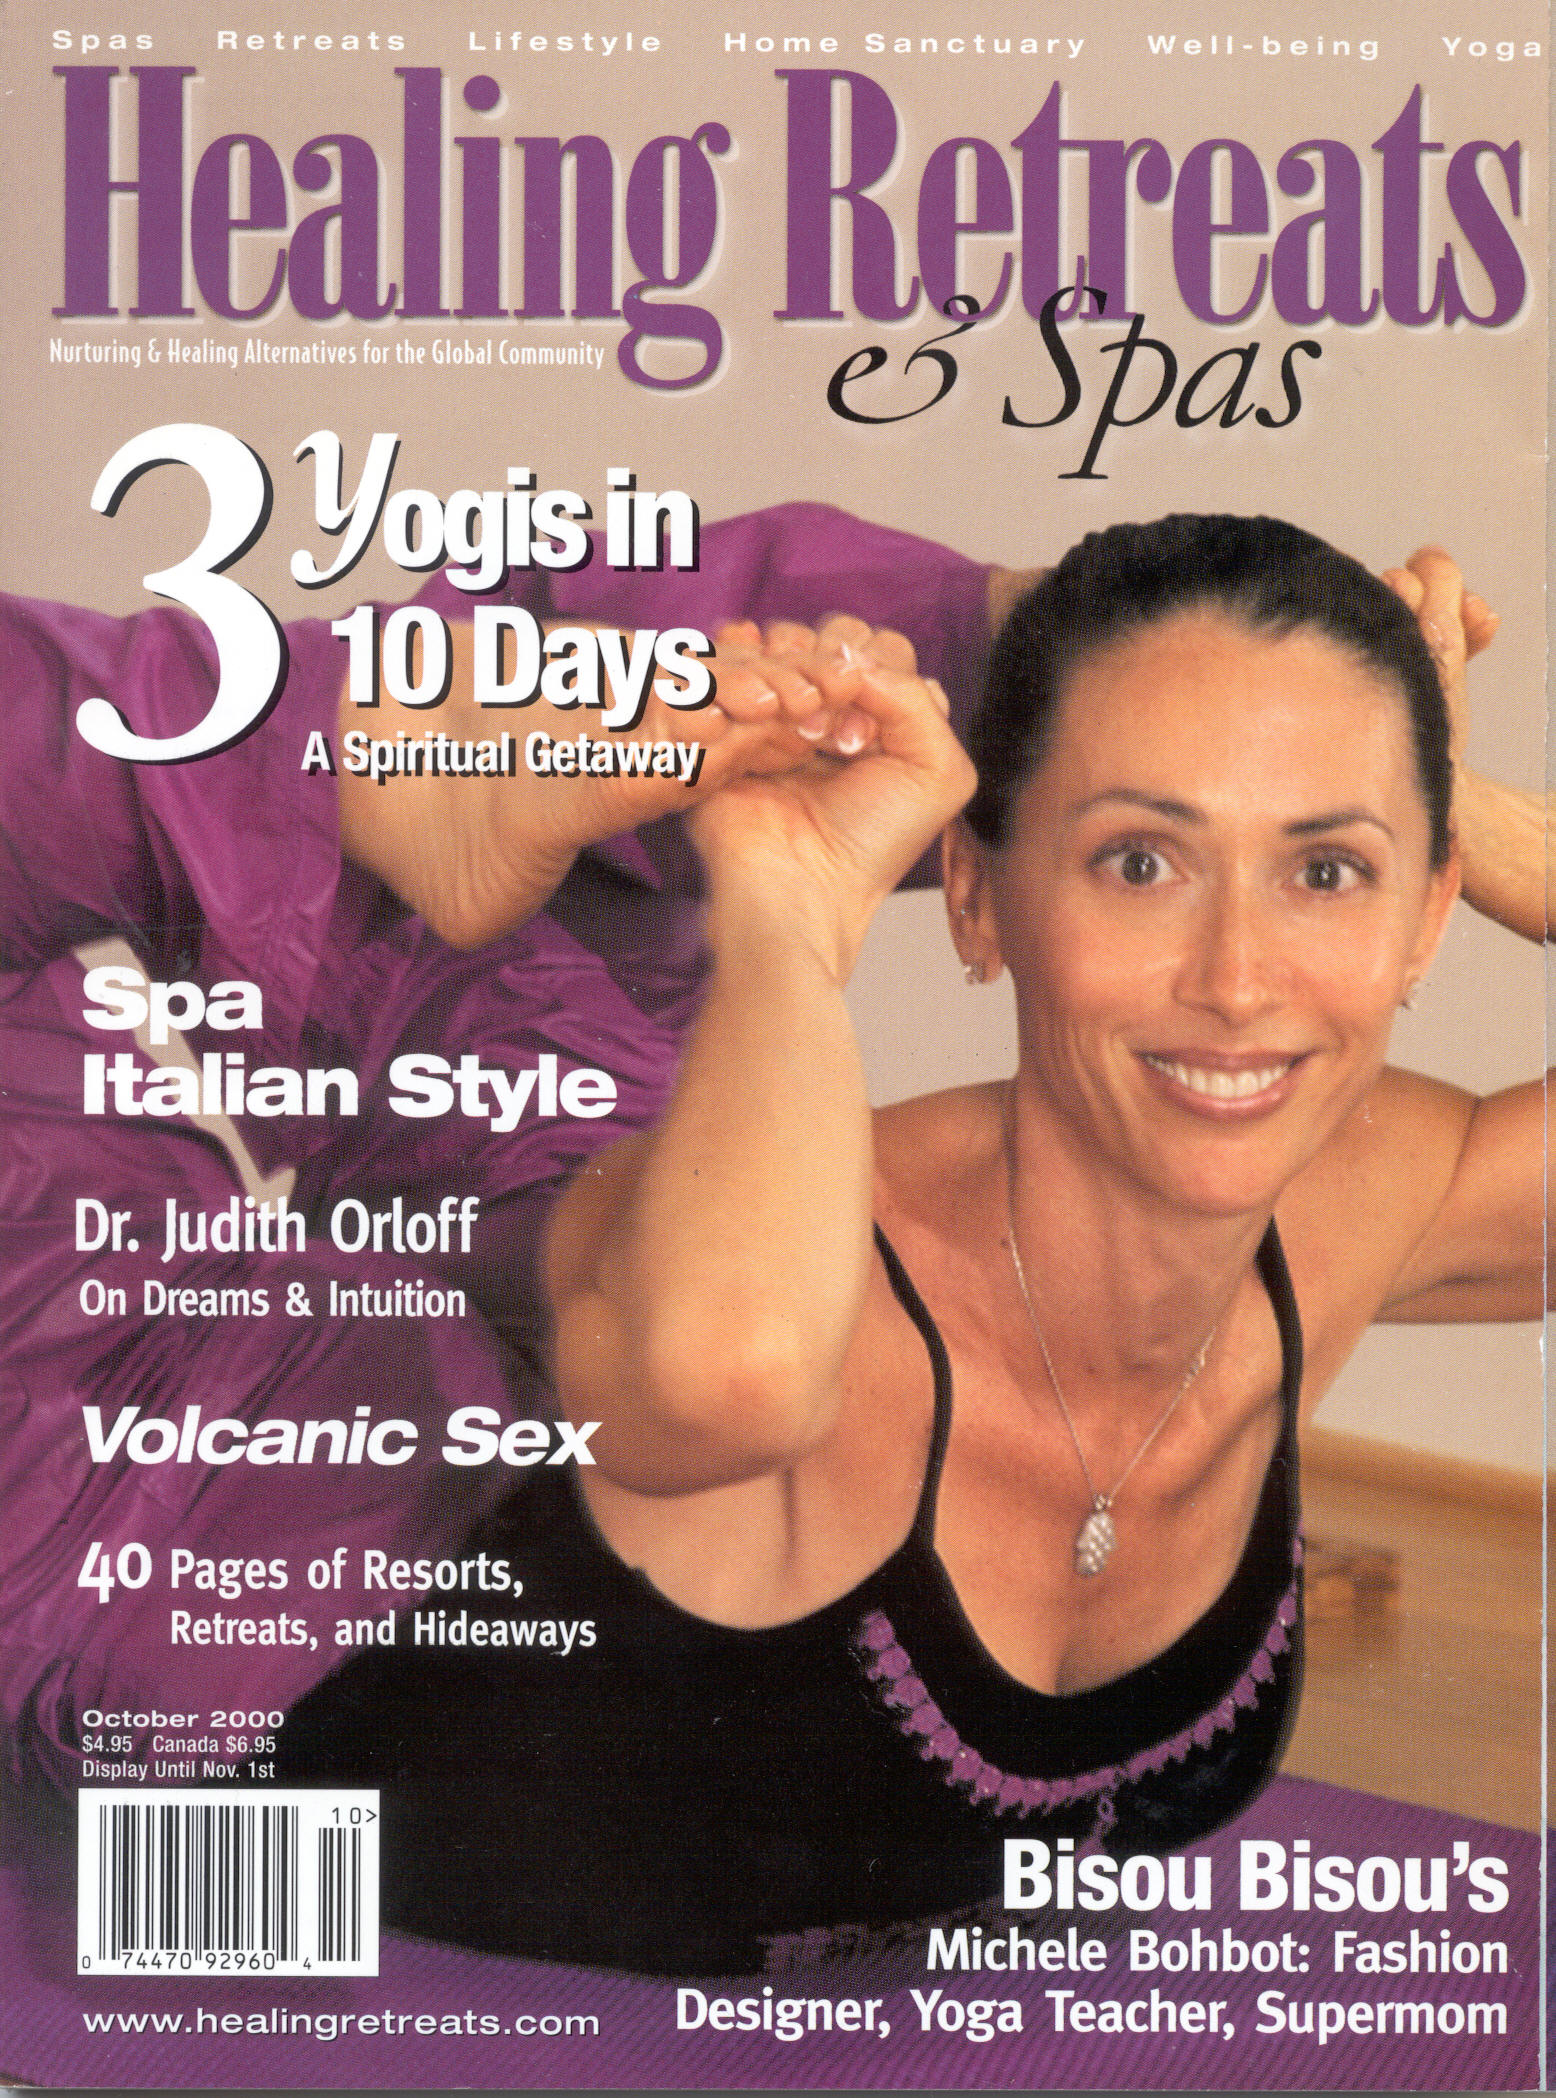 Healing Retreats & spas  oct. '00 cover page.jpg